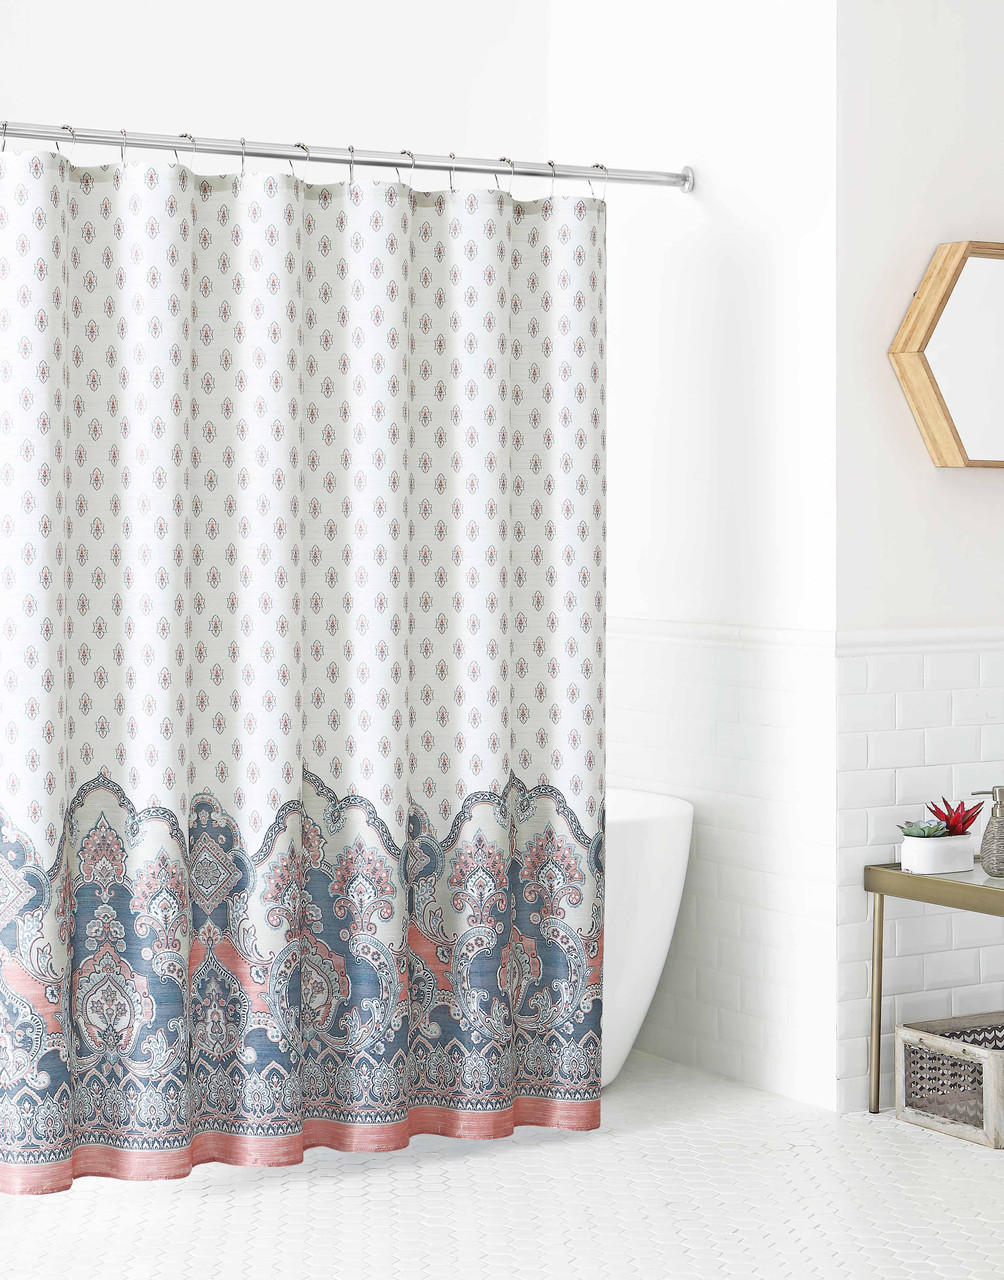 Fabric Shower Curtain For Bathroom Ivory With Coral And Slate Floral Design 72 X 72